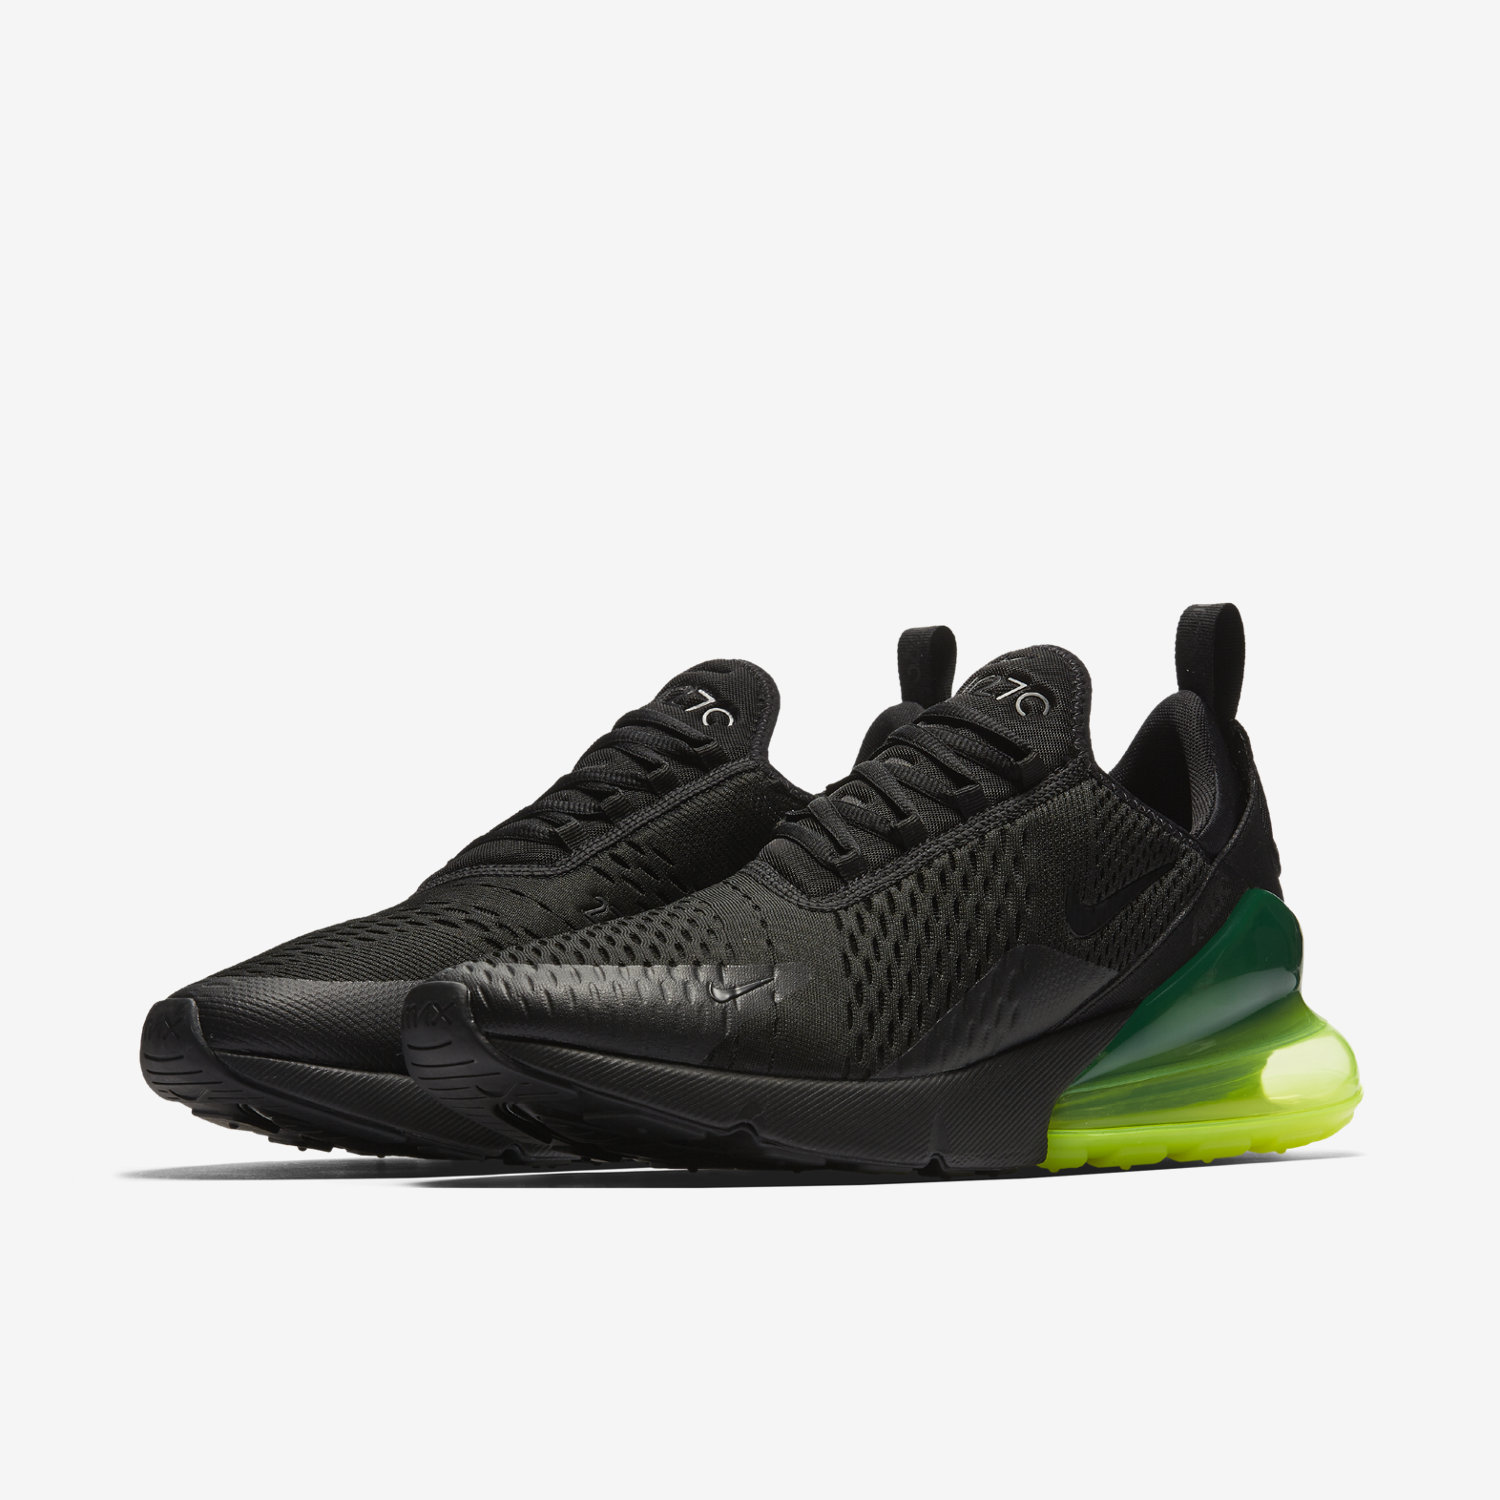 23d42c46a88 nike air max 270 outlet - Ecosia